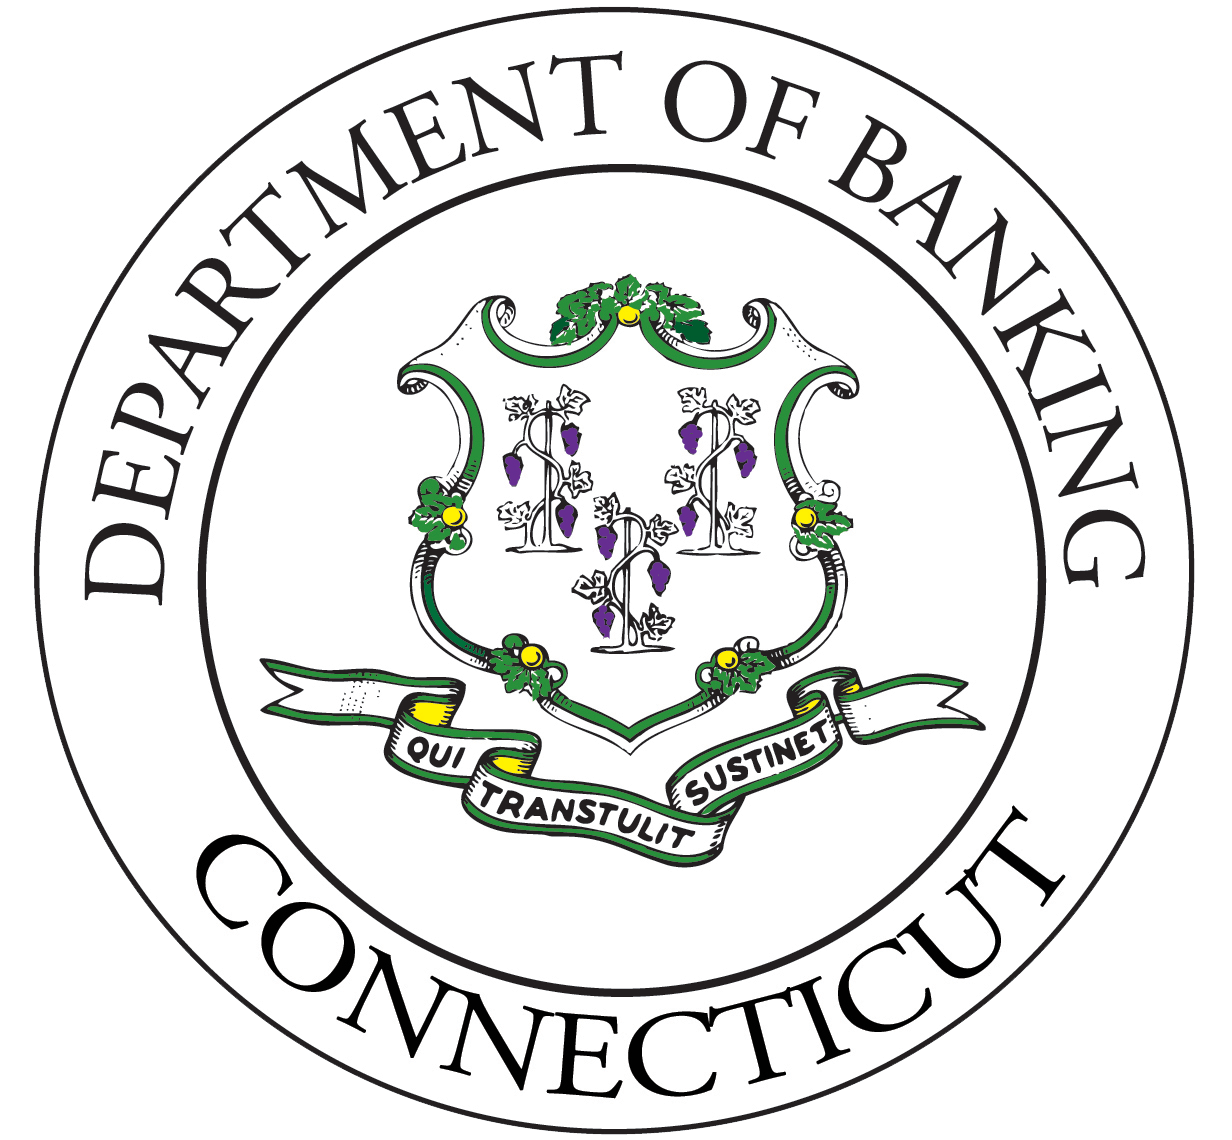 department of banking Logo